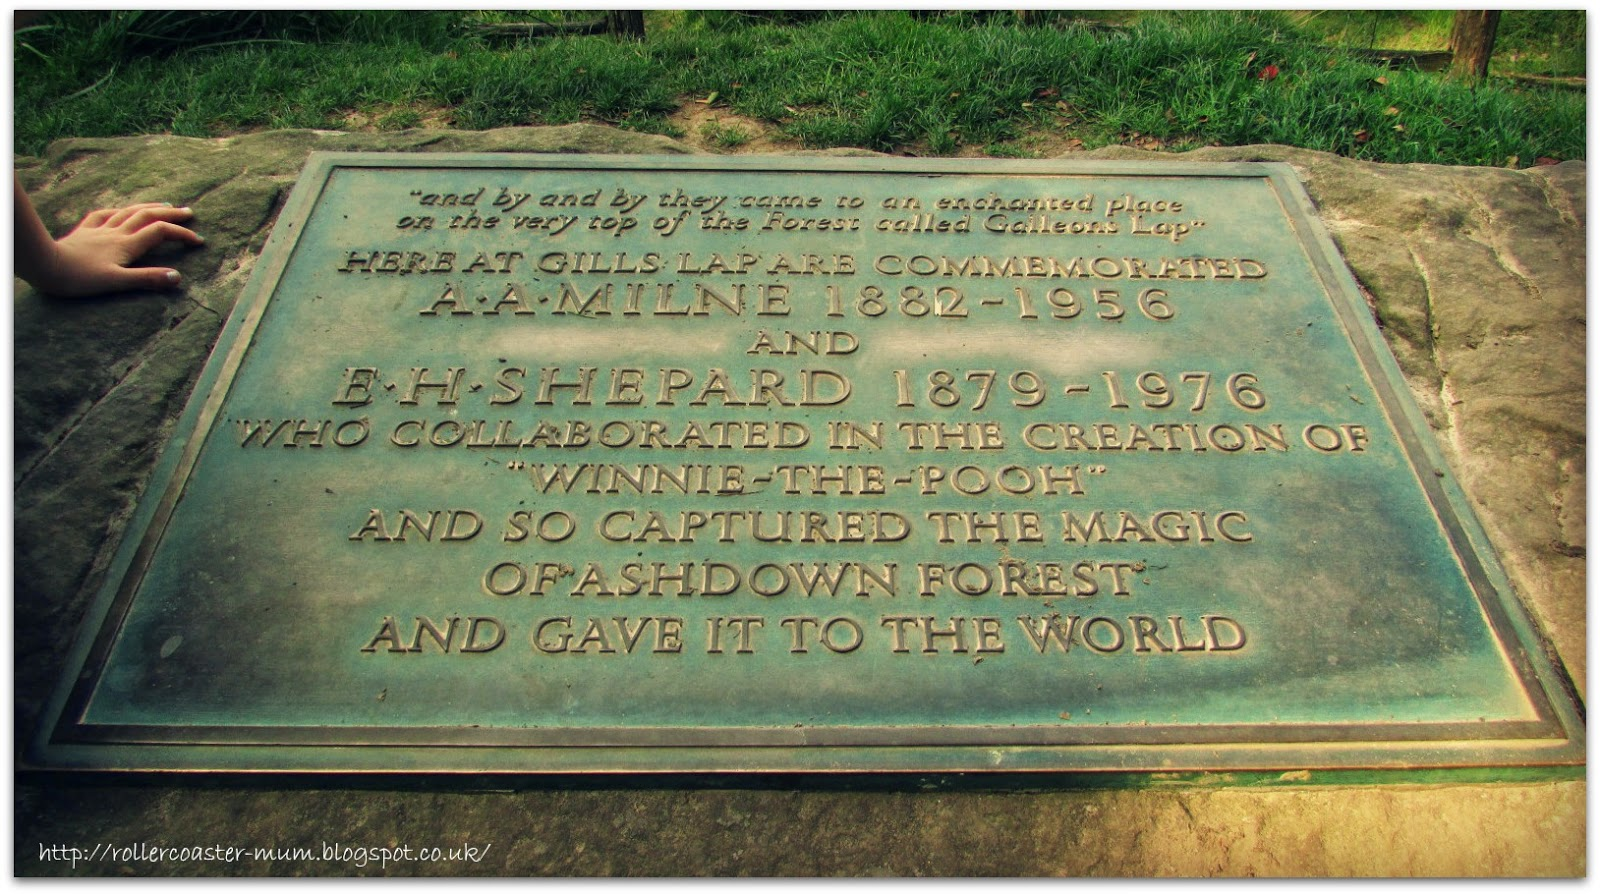 Memorial at the Enchanted Place, Ashdown Forest